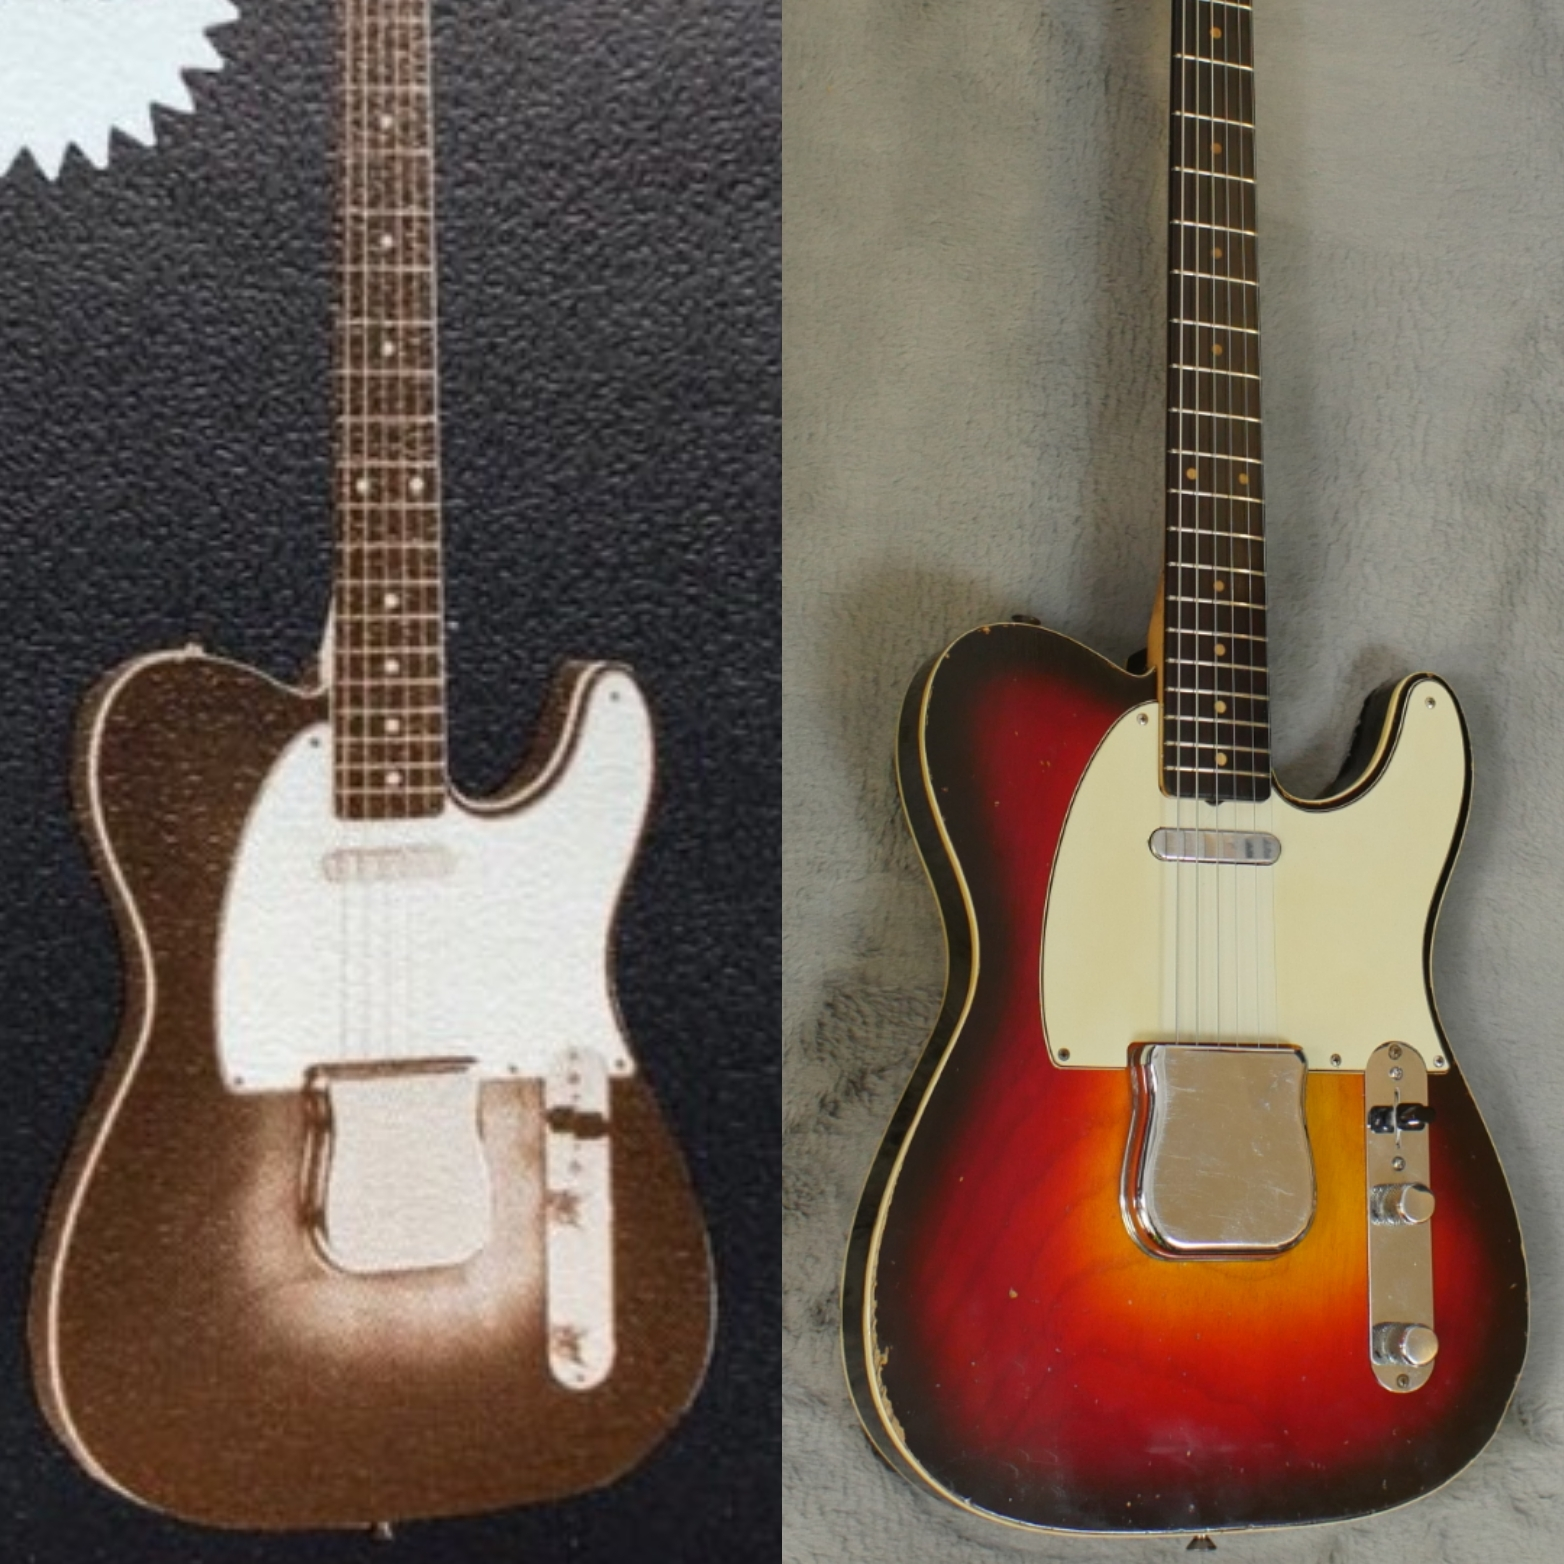 58/59 Custom Telecaster Resurfaces as Helen of Fullerton